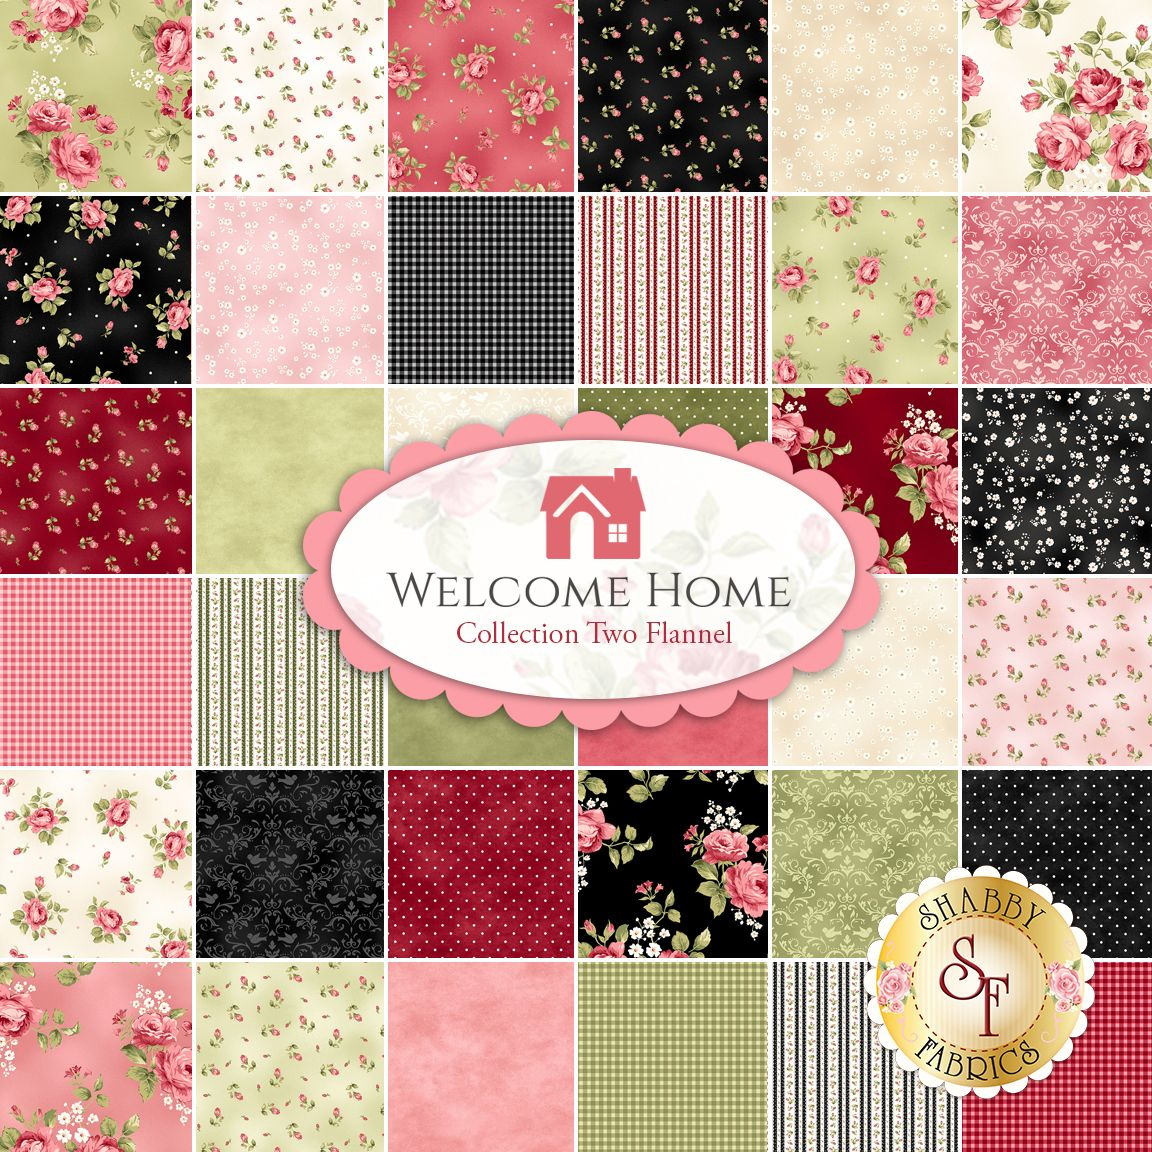 online pin free fabric quilt kits home patterns vogue decorating vintage shop tips quilting